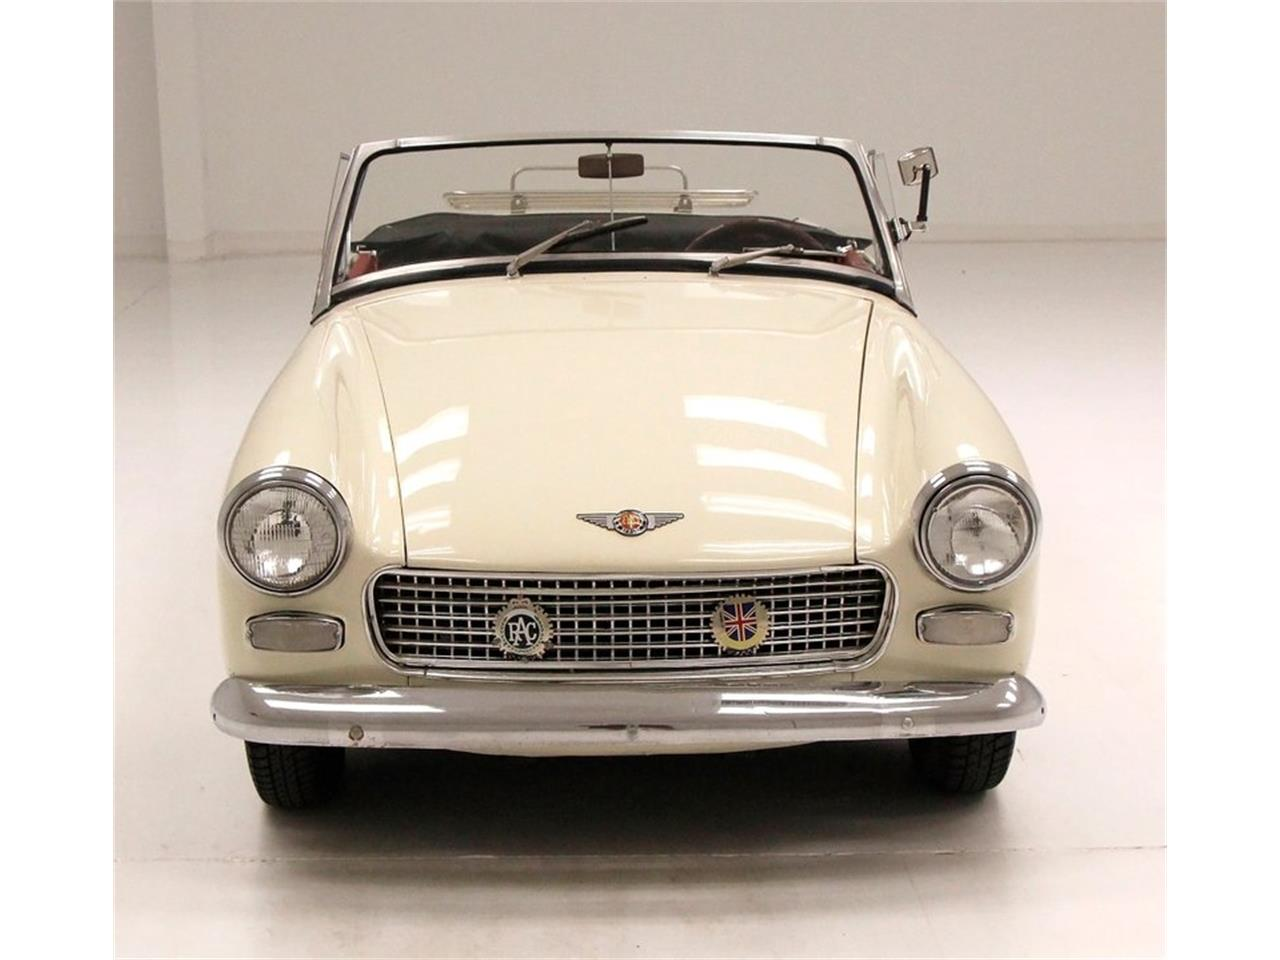 Large Picture of '65 Austin-Healey Sprite located in Morgantown Pennsylvania - $10,900.00 Offered by Classic Auto Mall - QGTT